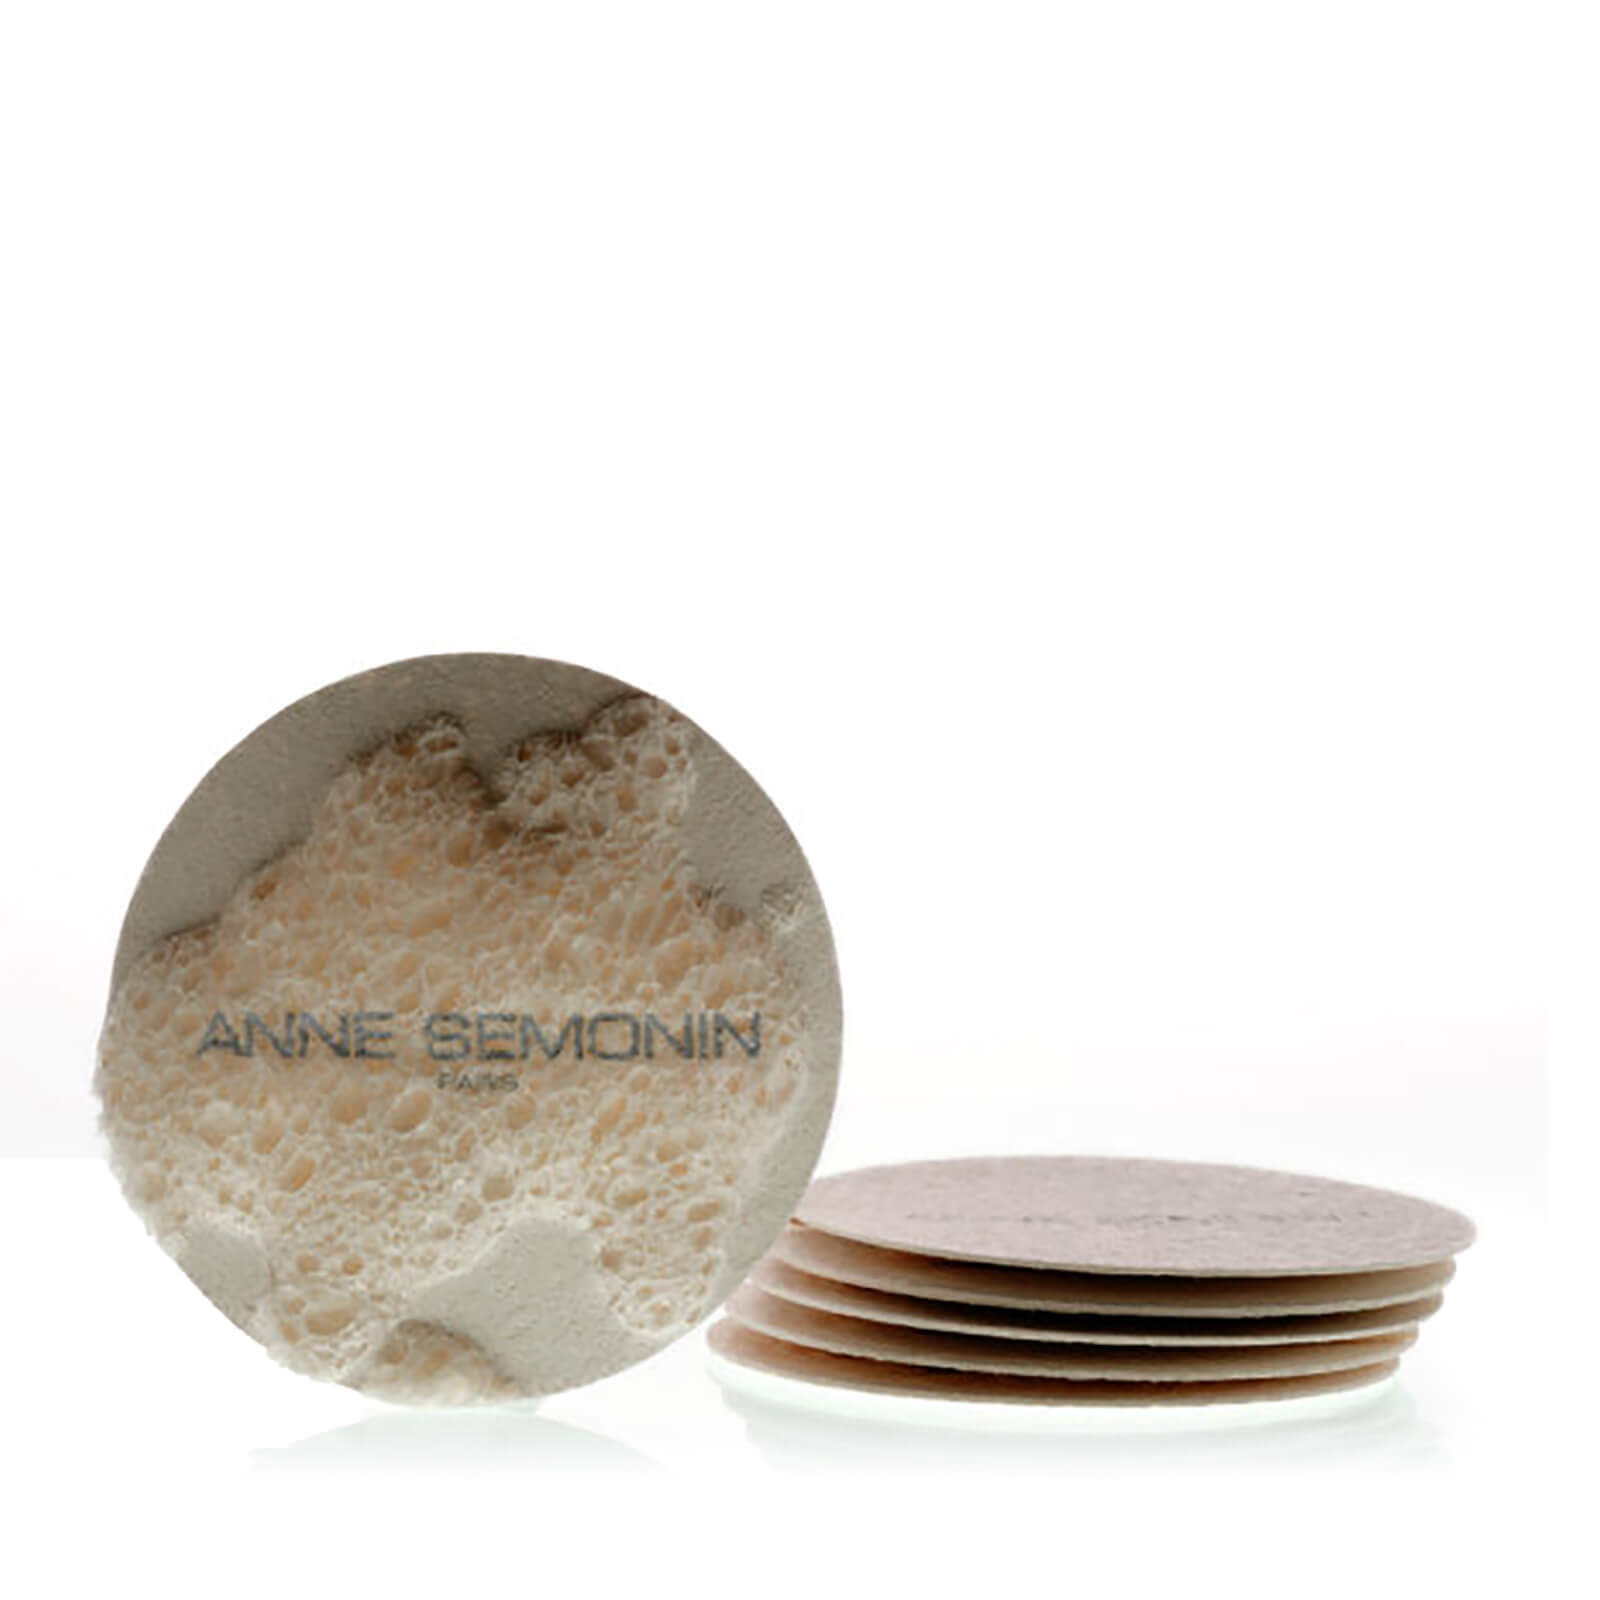 Anne Semonin Cellulose Sponges (6 Items)